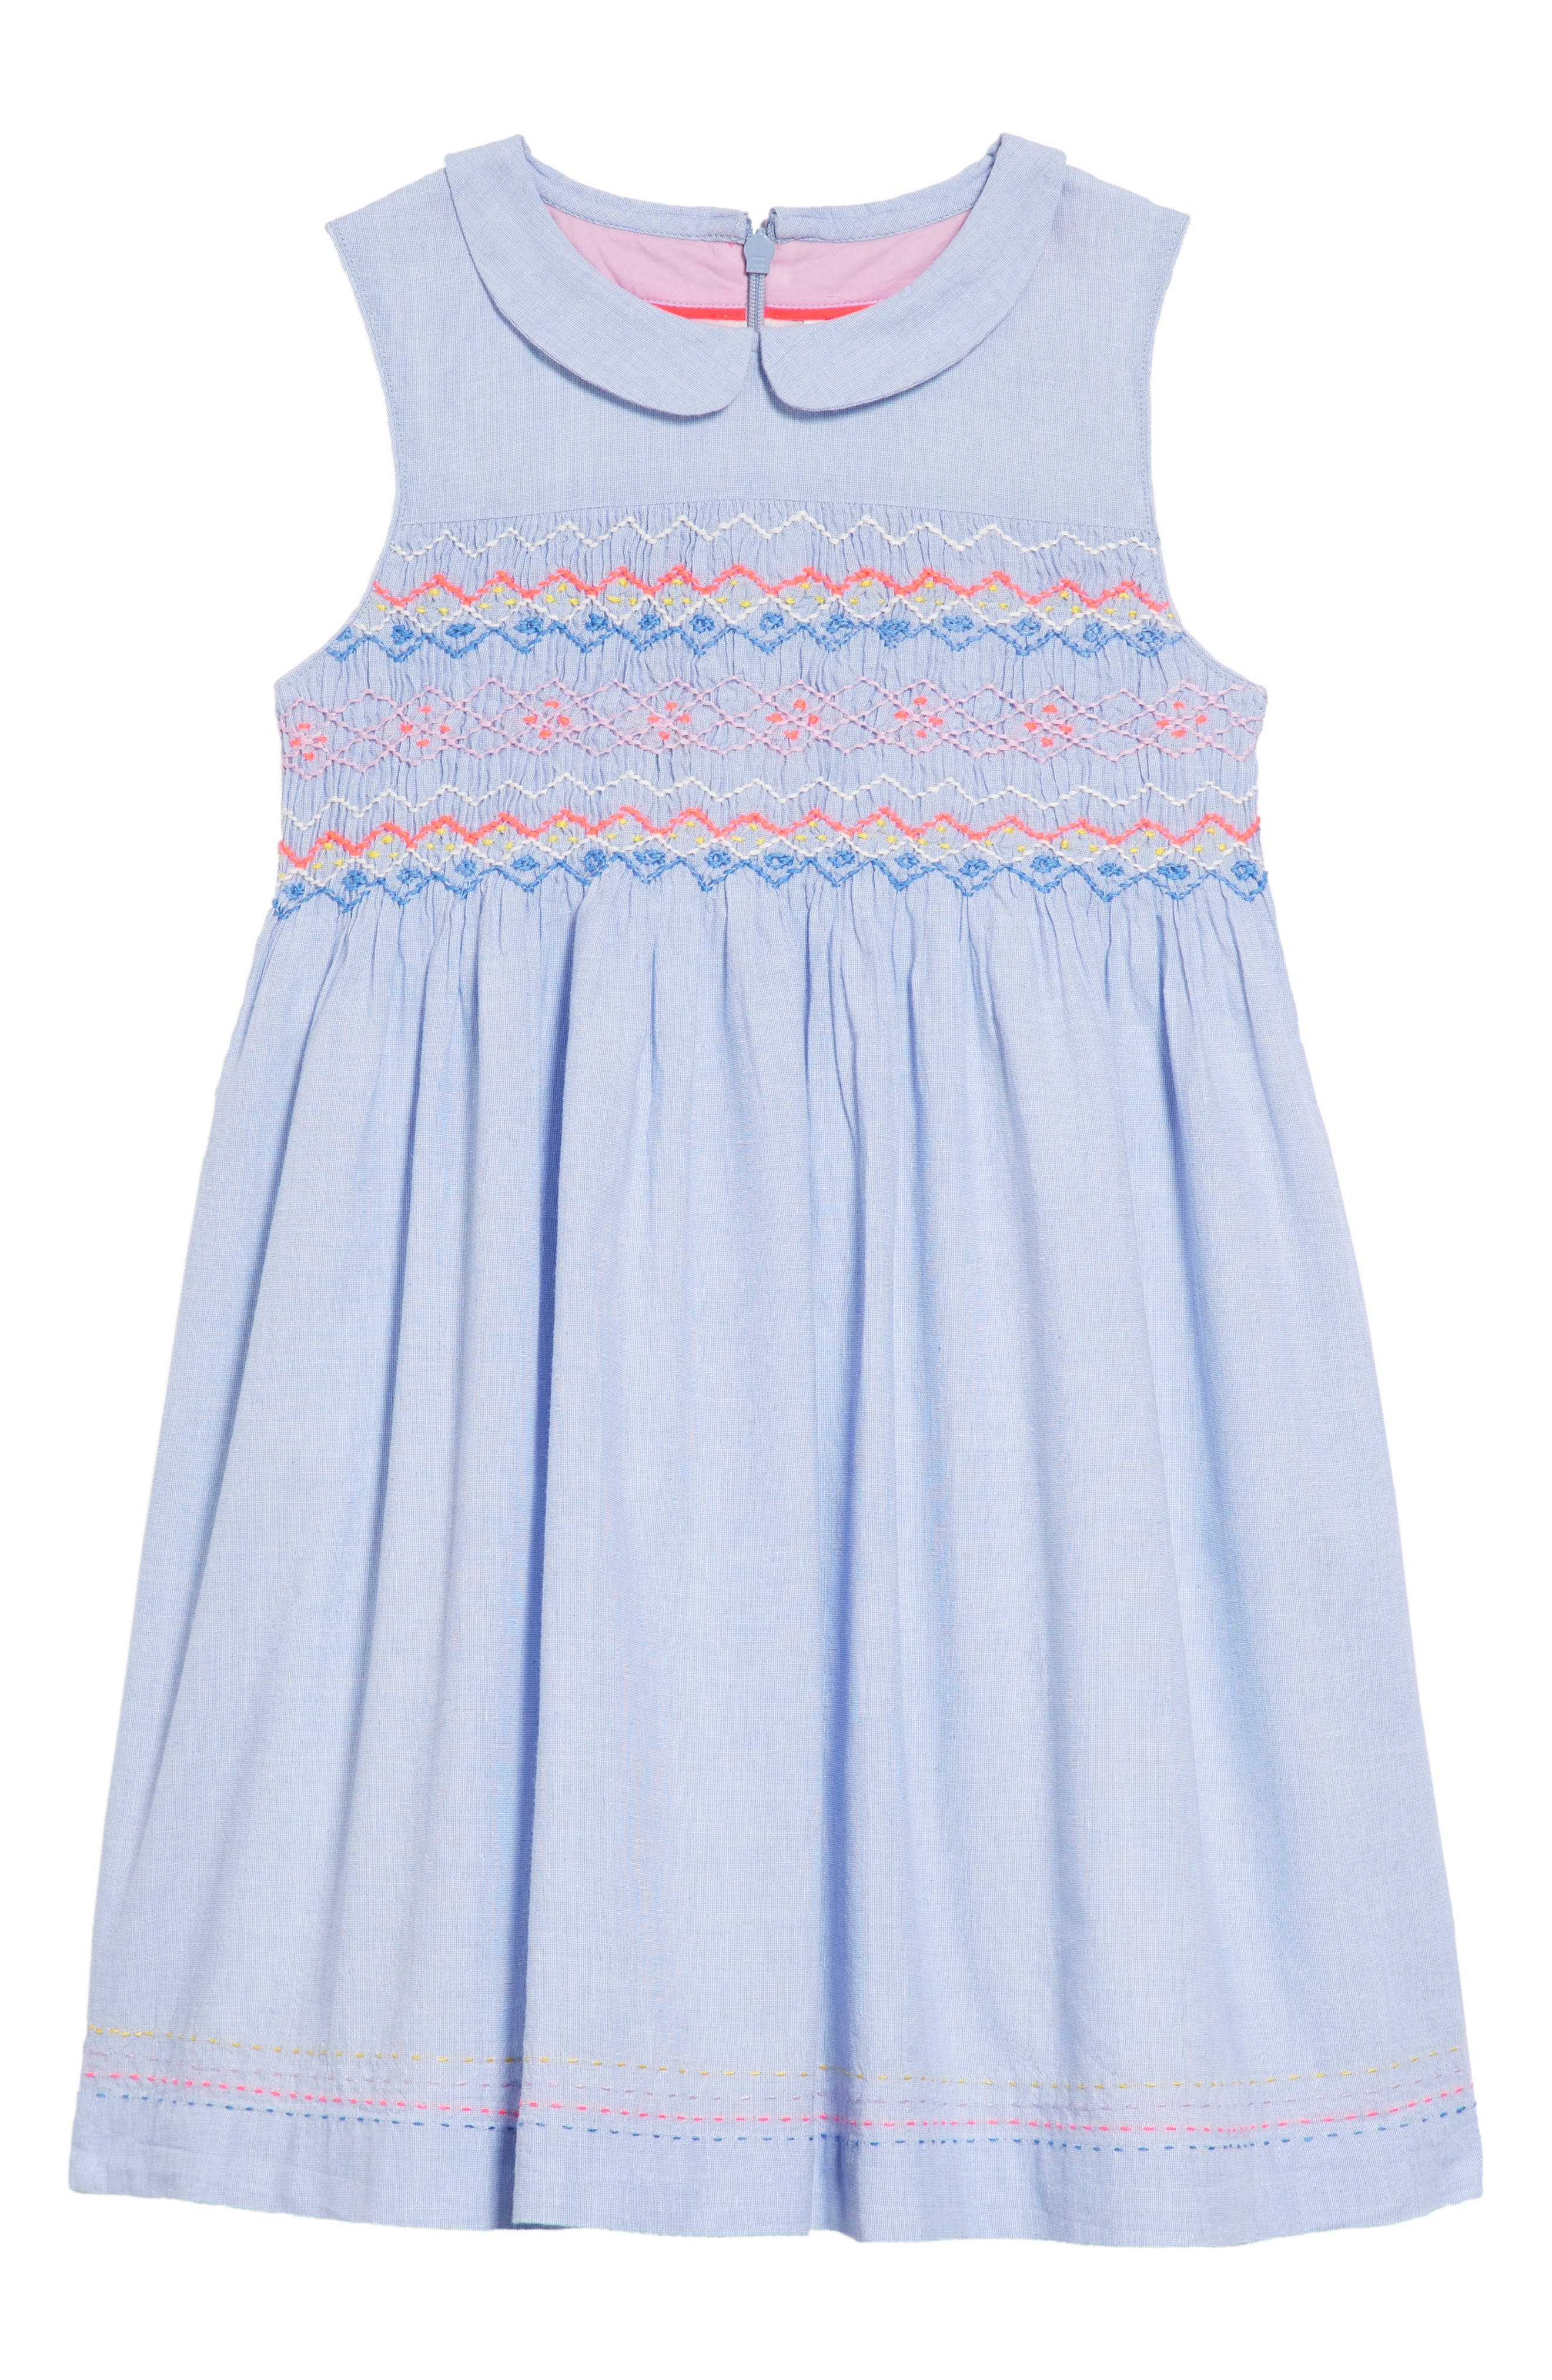 Nostalgic Smocked Dress,                             Main thumbnail 1, color,                             454